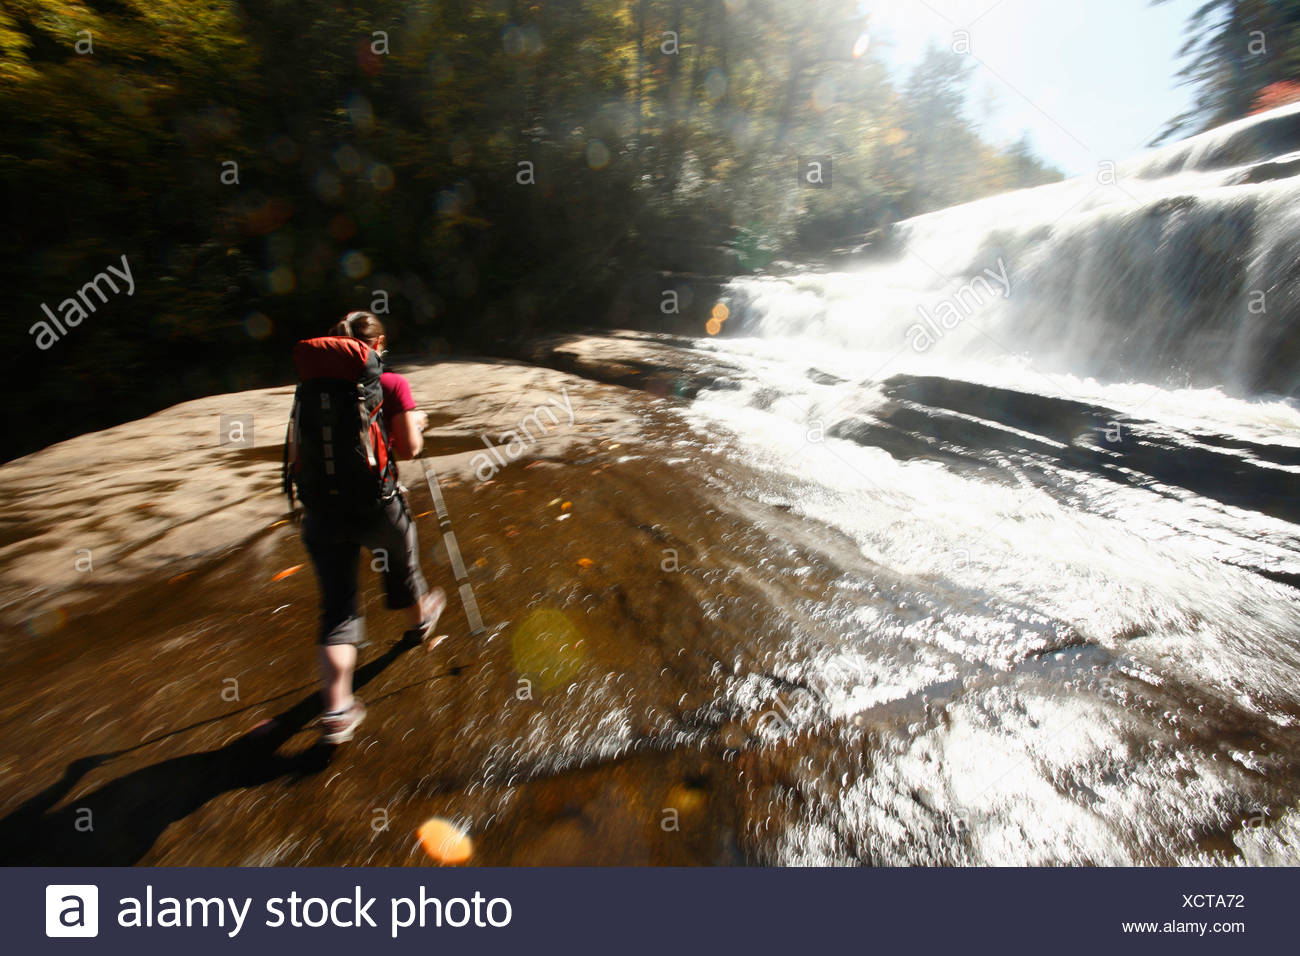 Motion blur of woman walking at base of waterfall. - Stock Image